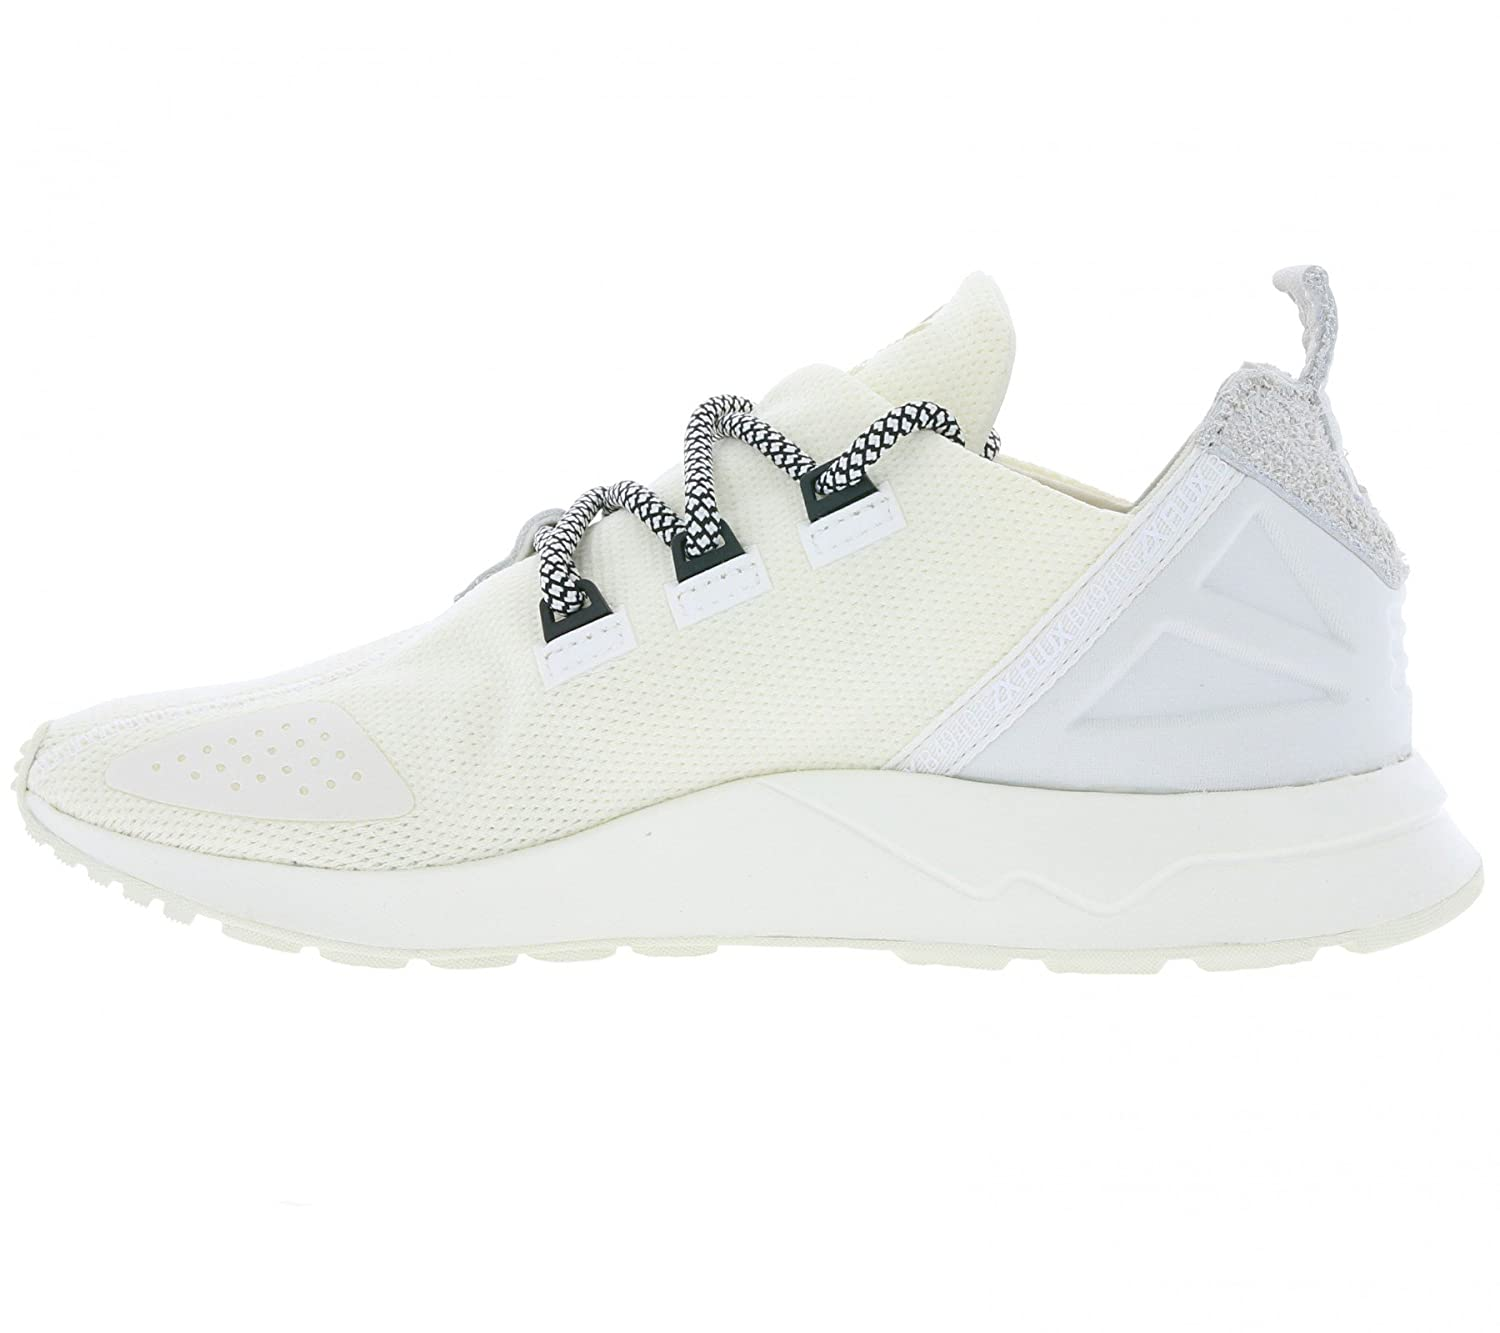 reputable site b2b63 25eeb Amazon.com   adidas ZX Flux ADV X Men s Sneaker   Fashion Sneakers